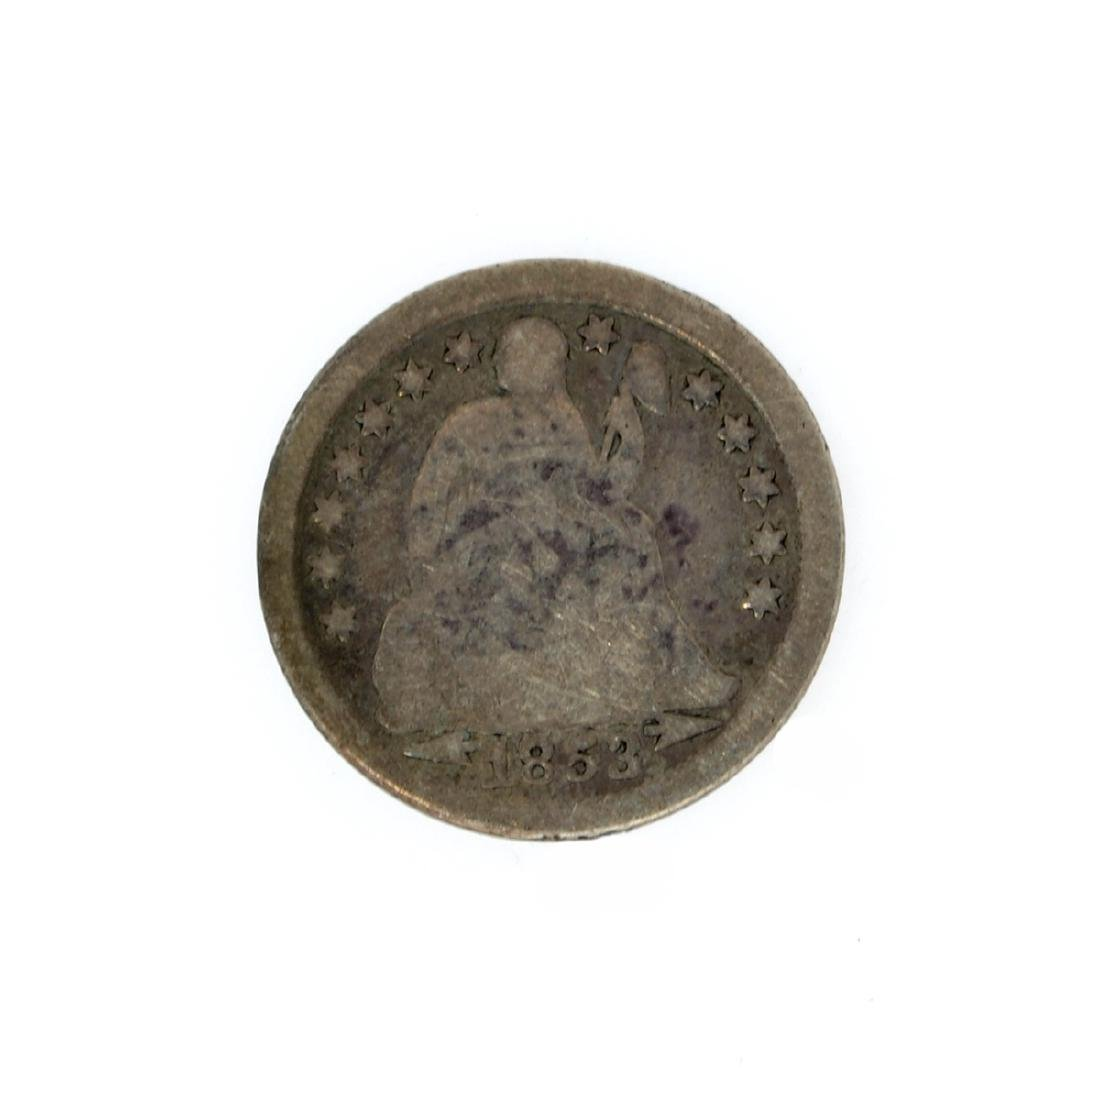 Rare 1853 Arrows At Date Liberty Seated Dime Coin